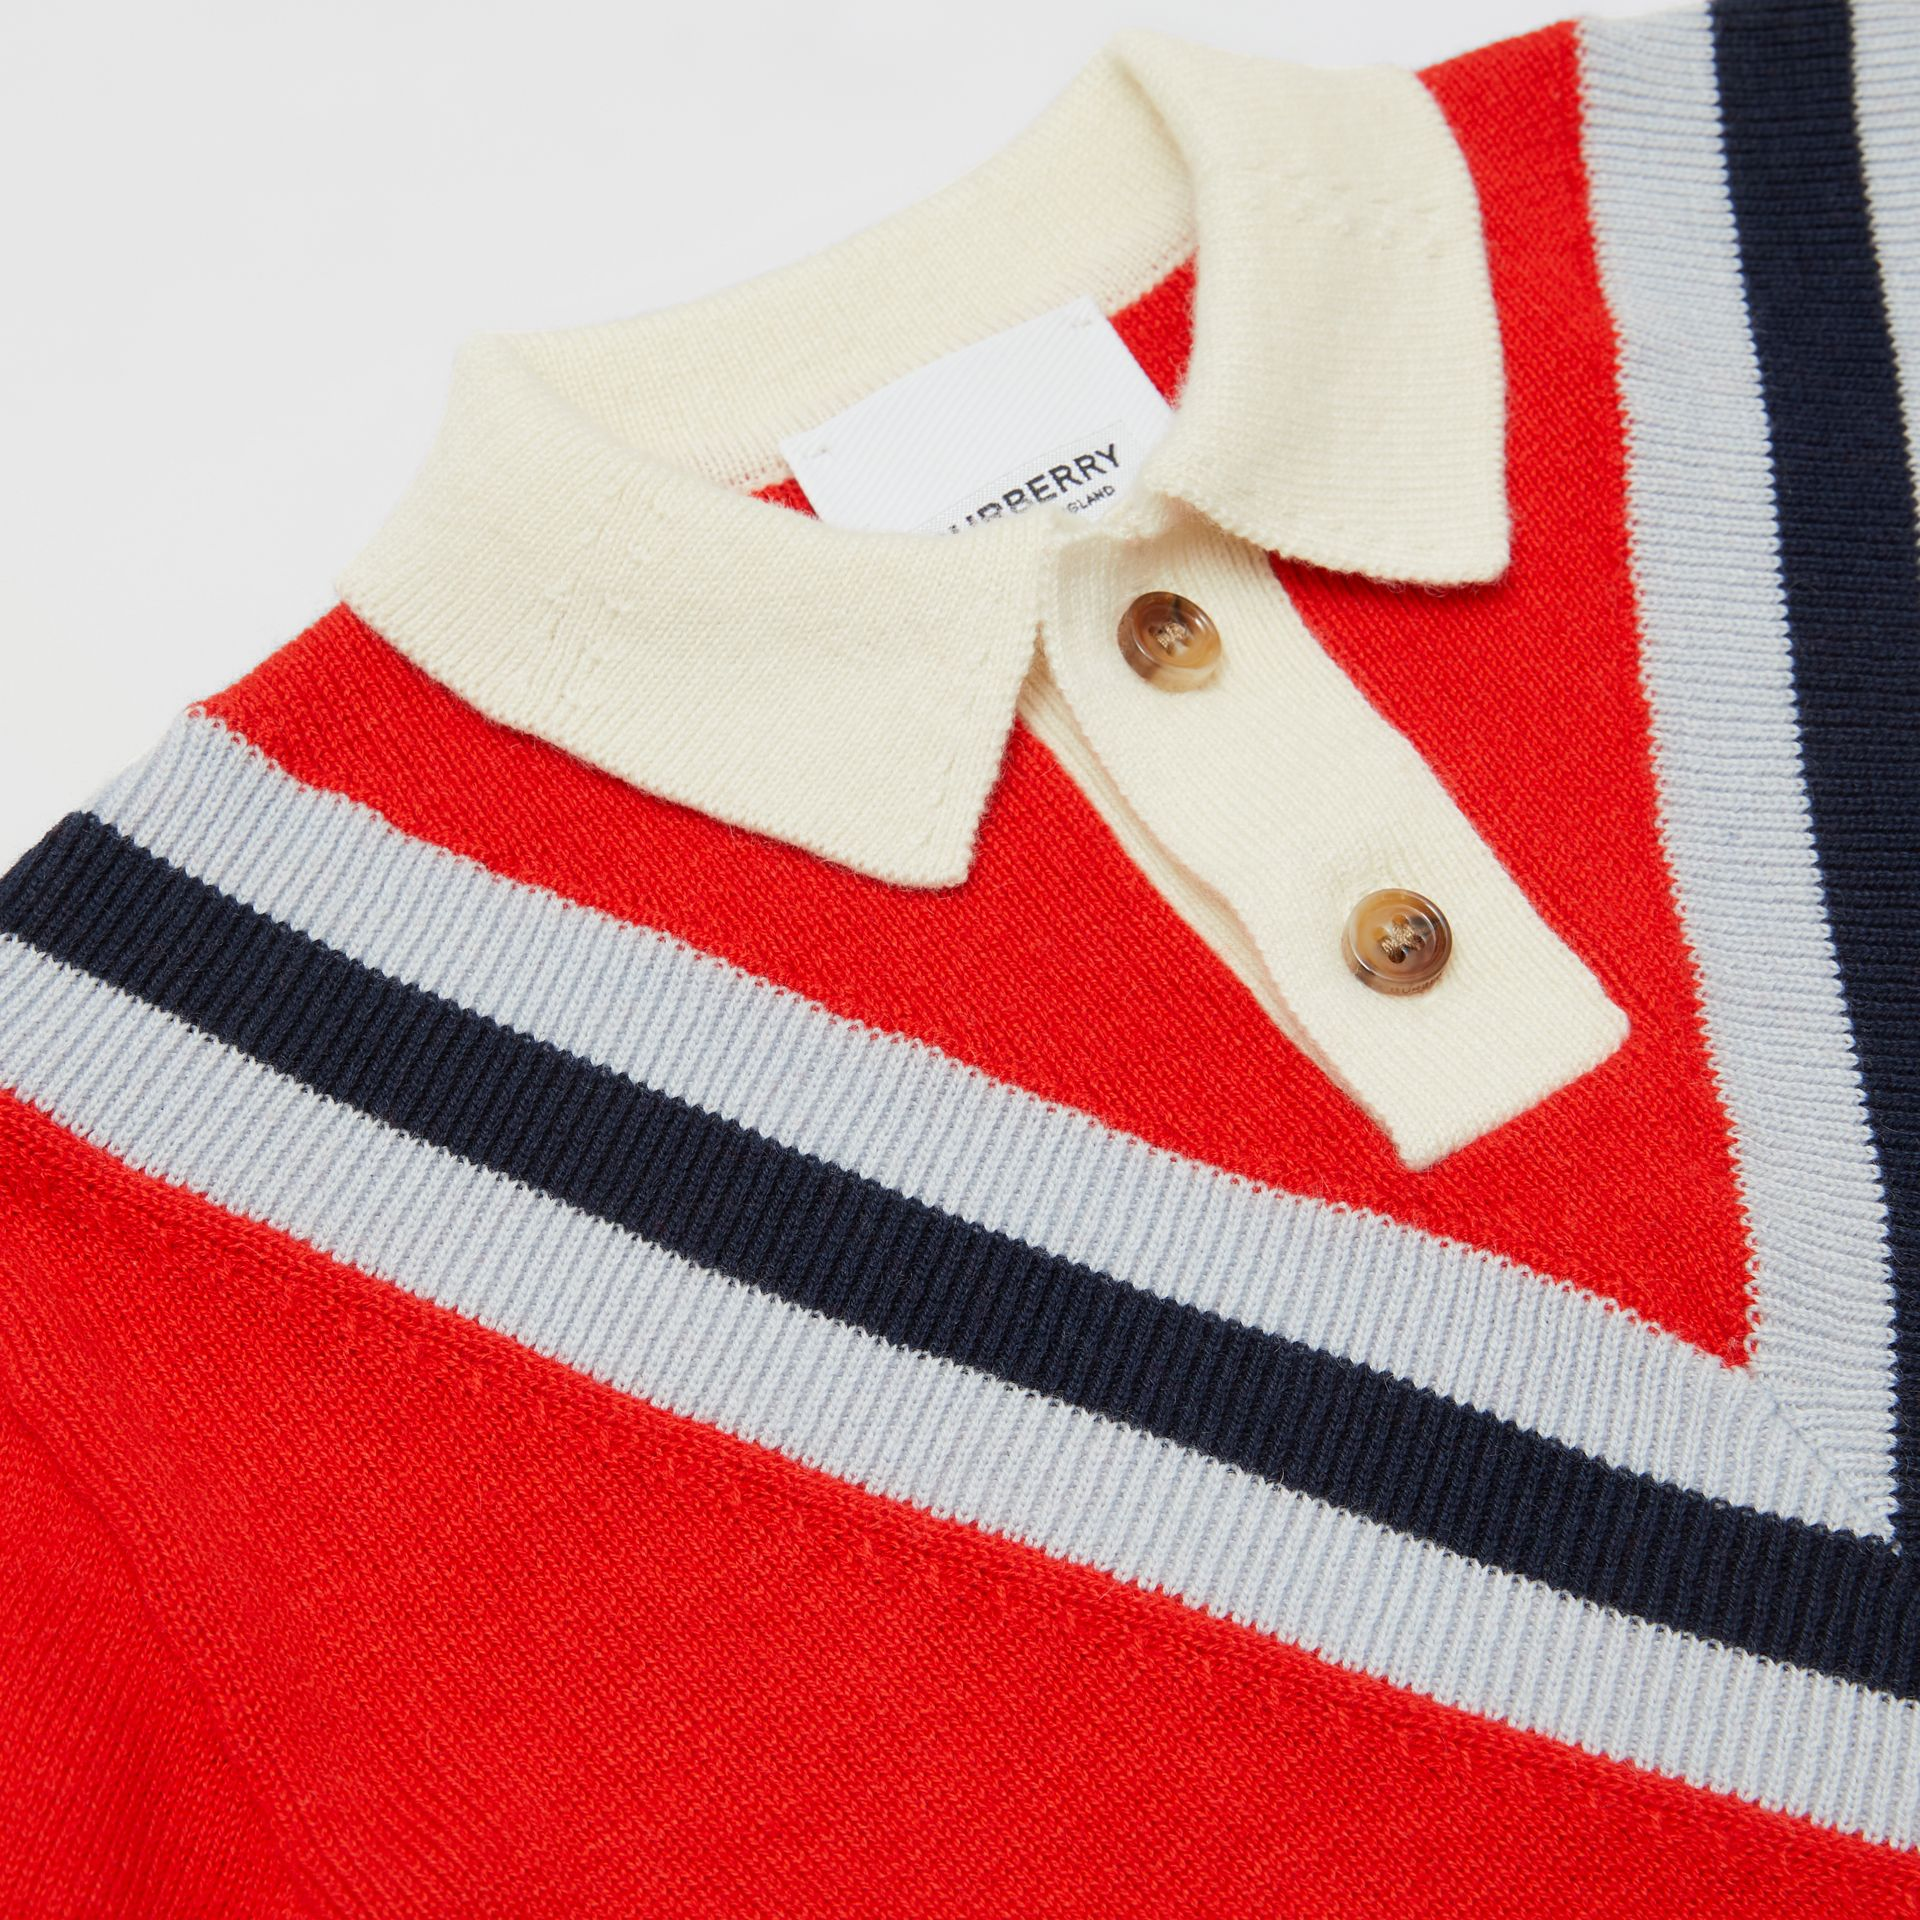 Long-sleeve Knit Cashmere Cotton Polo Shirt in Bright Red - Children | Burberry United Kingdom - gallery image 1